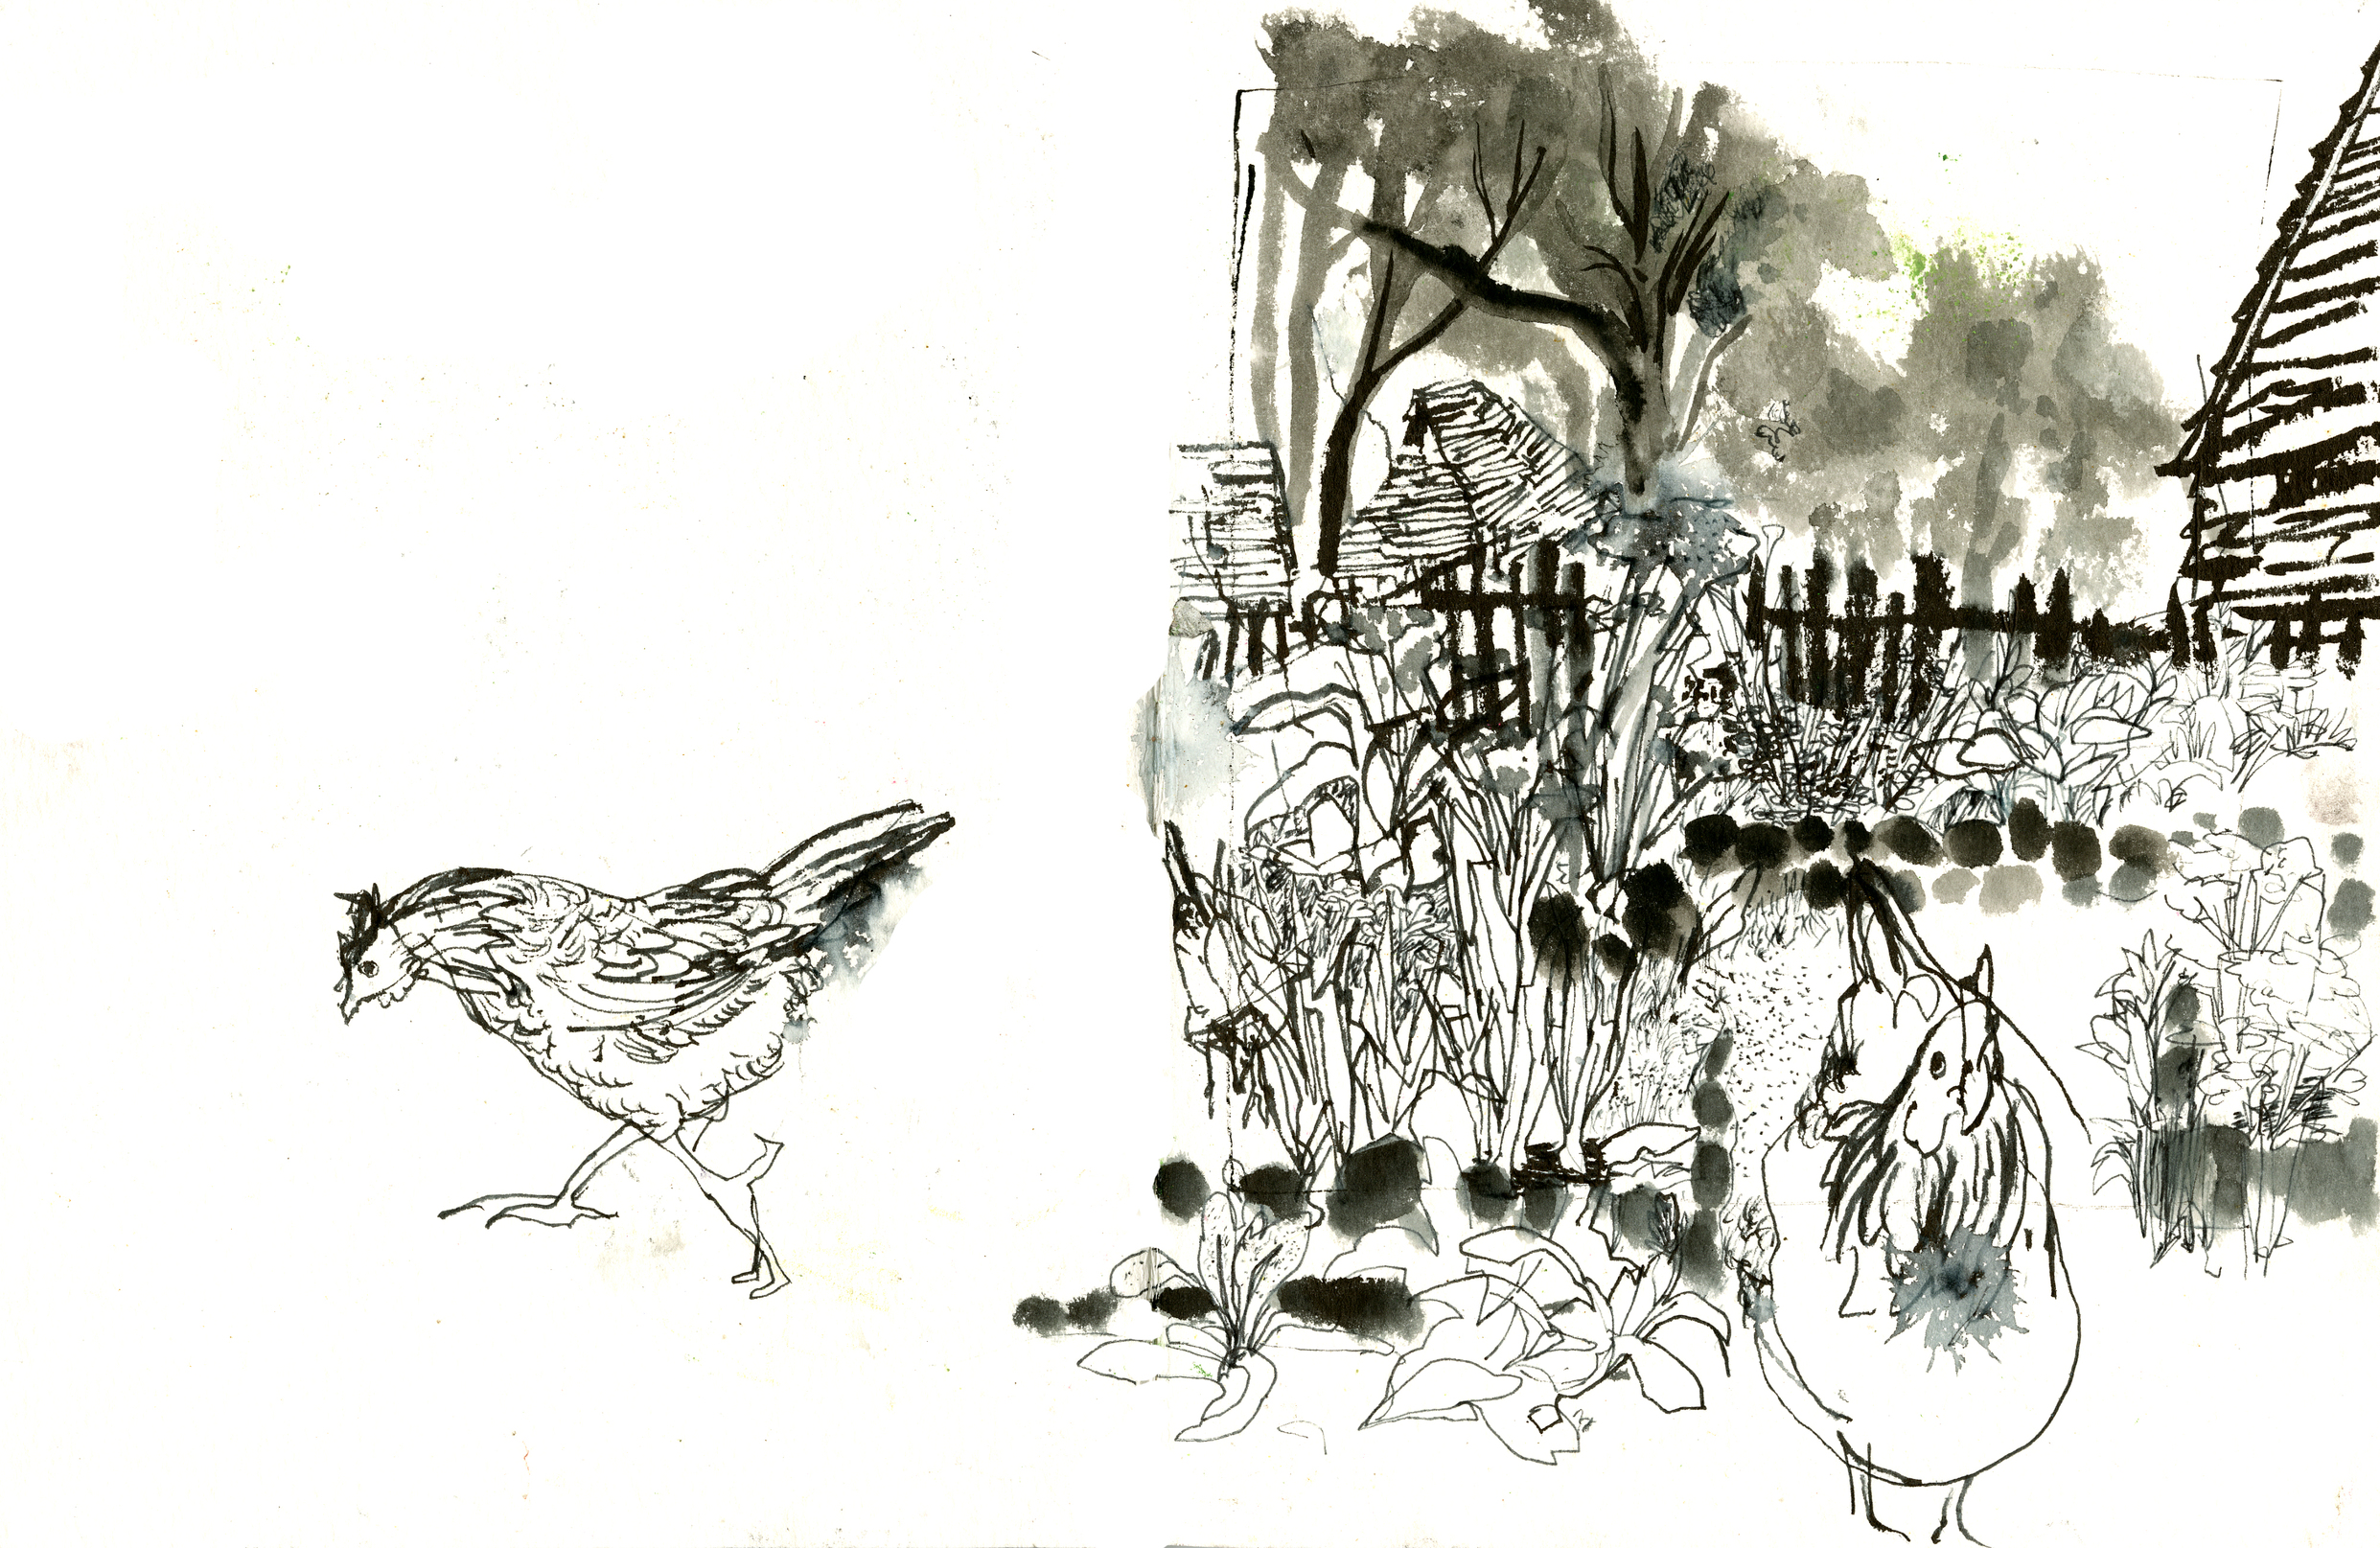 A Pilgrim garden, and a couple of Pilgrim chickens!